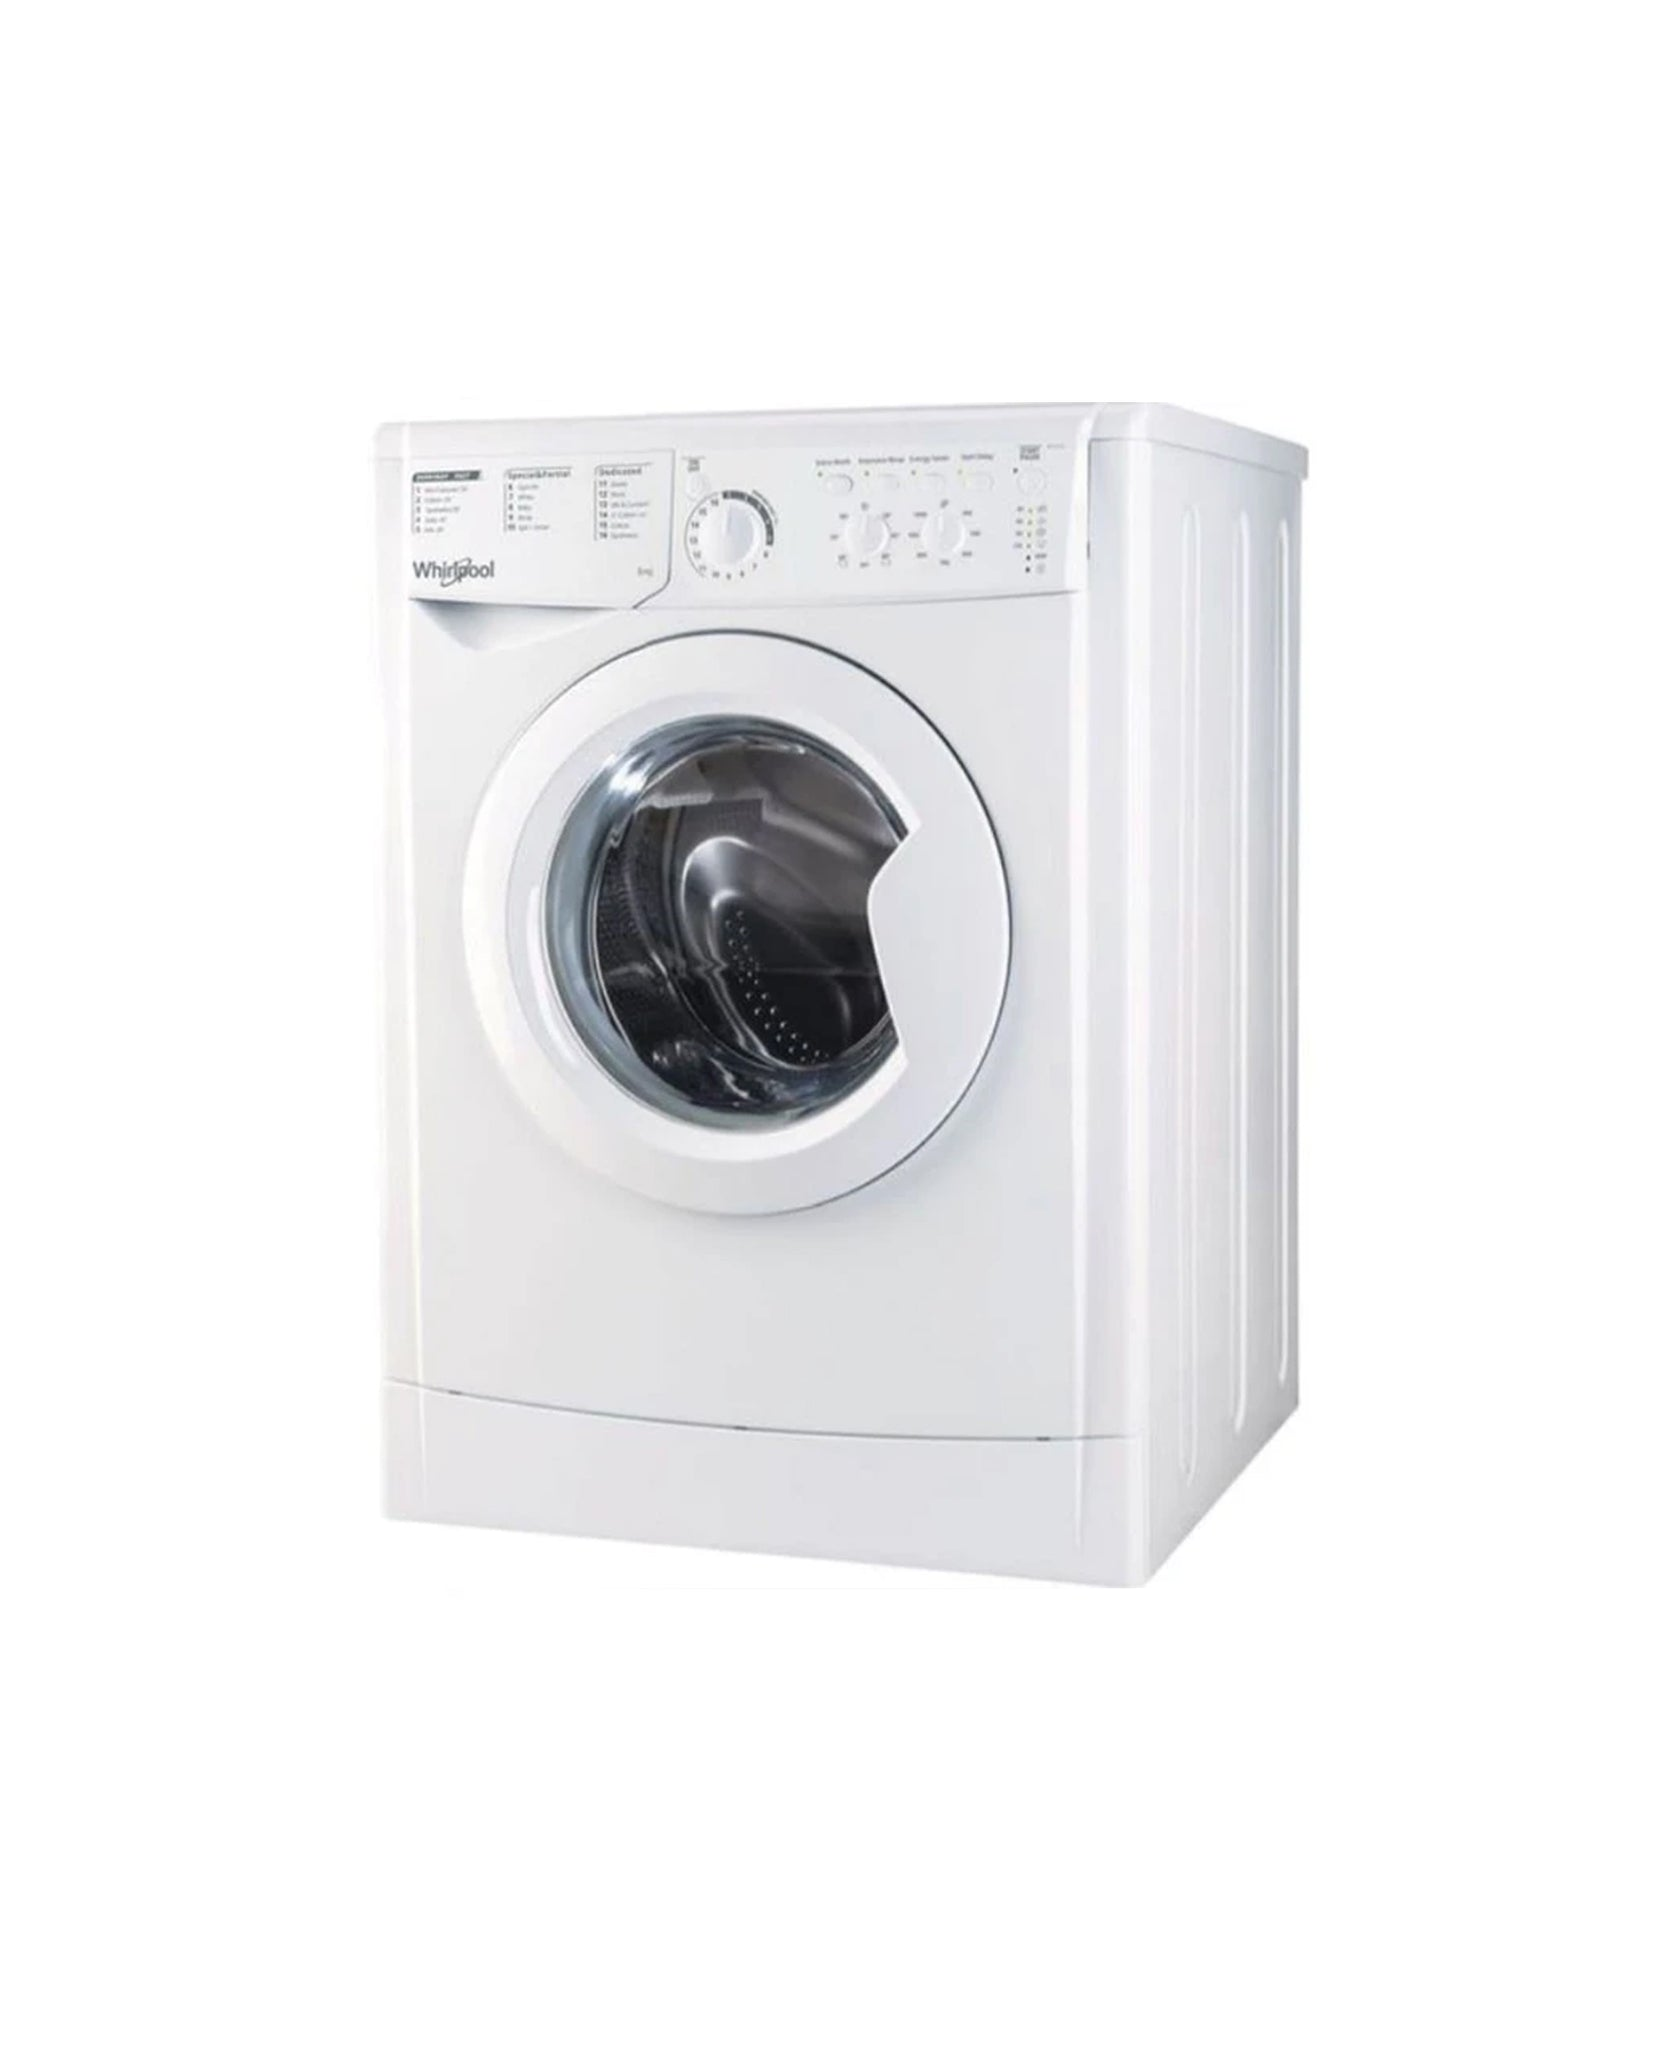 WHIRLPOOL WCL6100SA F/LOADER WASHING MACHINE